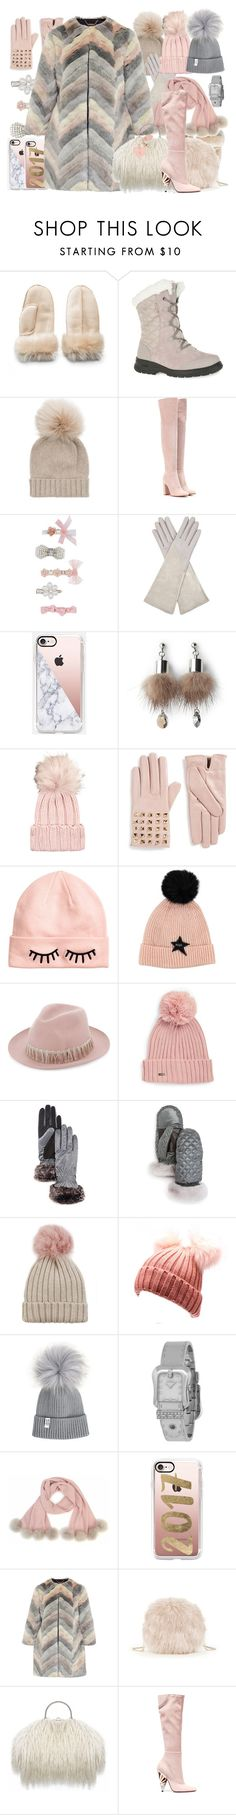 """""""So Cozy: Winter Boots"""" by yours-styling-best-friend ❤ liked on Polyvore featuring Mudd, Kamik, Inverni, Gianvito Rossi, Monsoon, Aquatalia by Marvin K., Casetify, Simons, Valentino and H&M"""